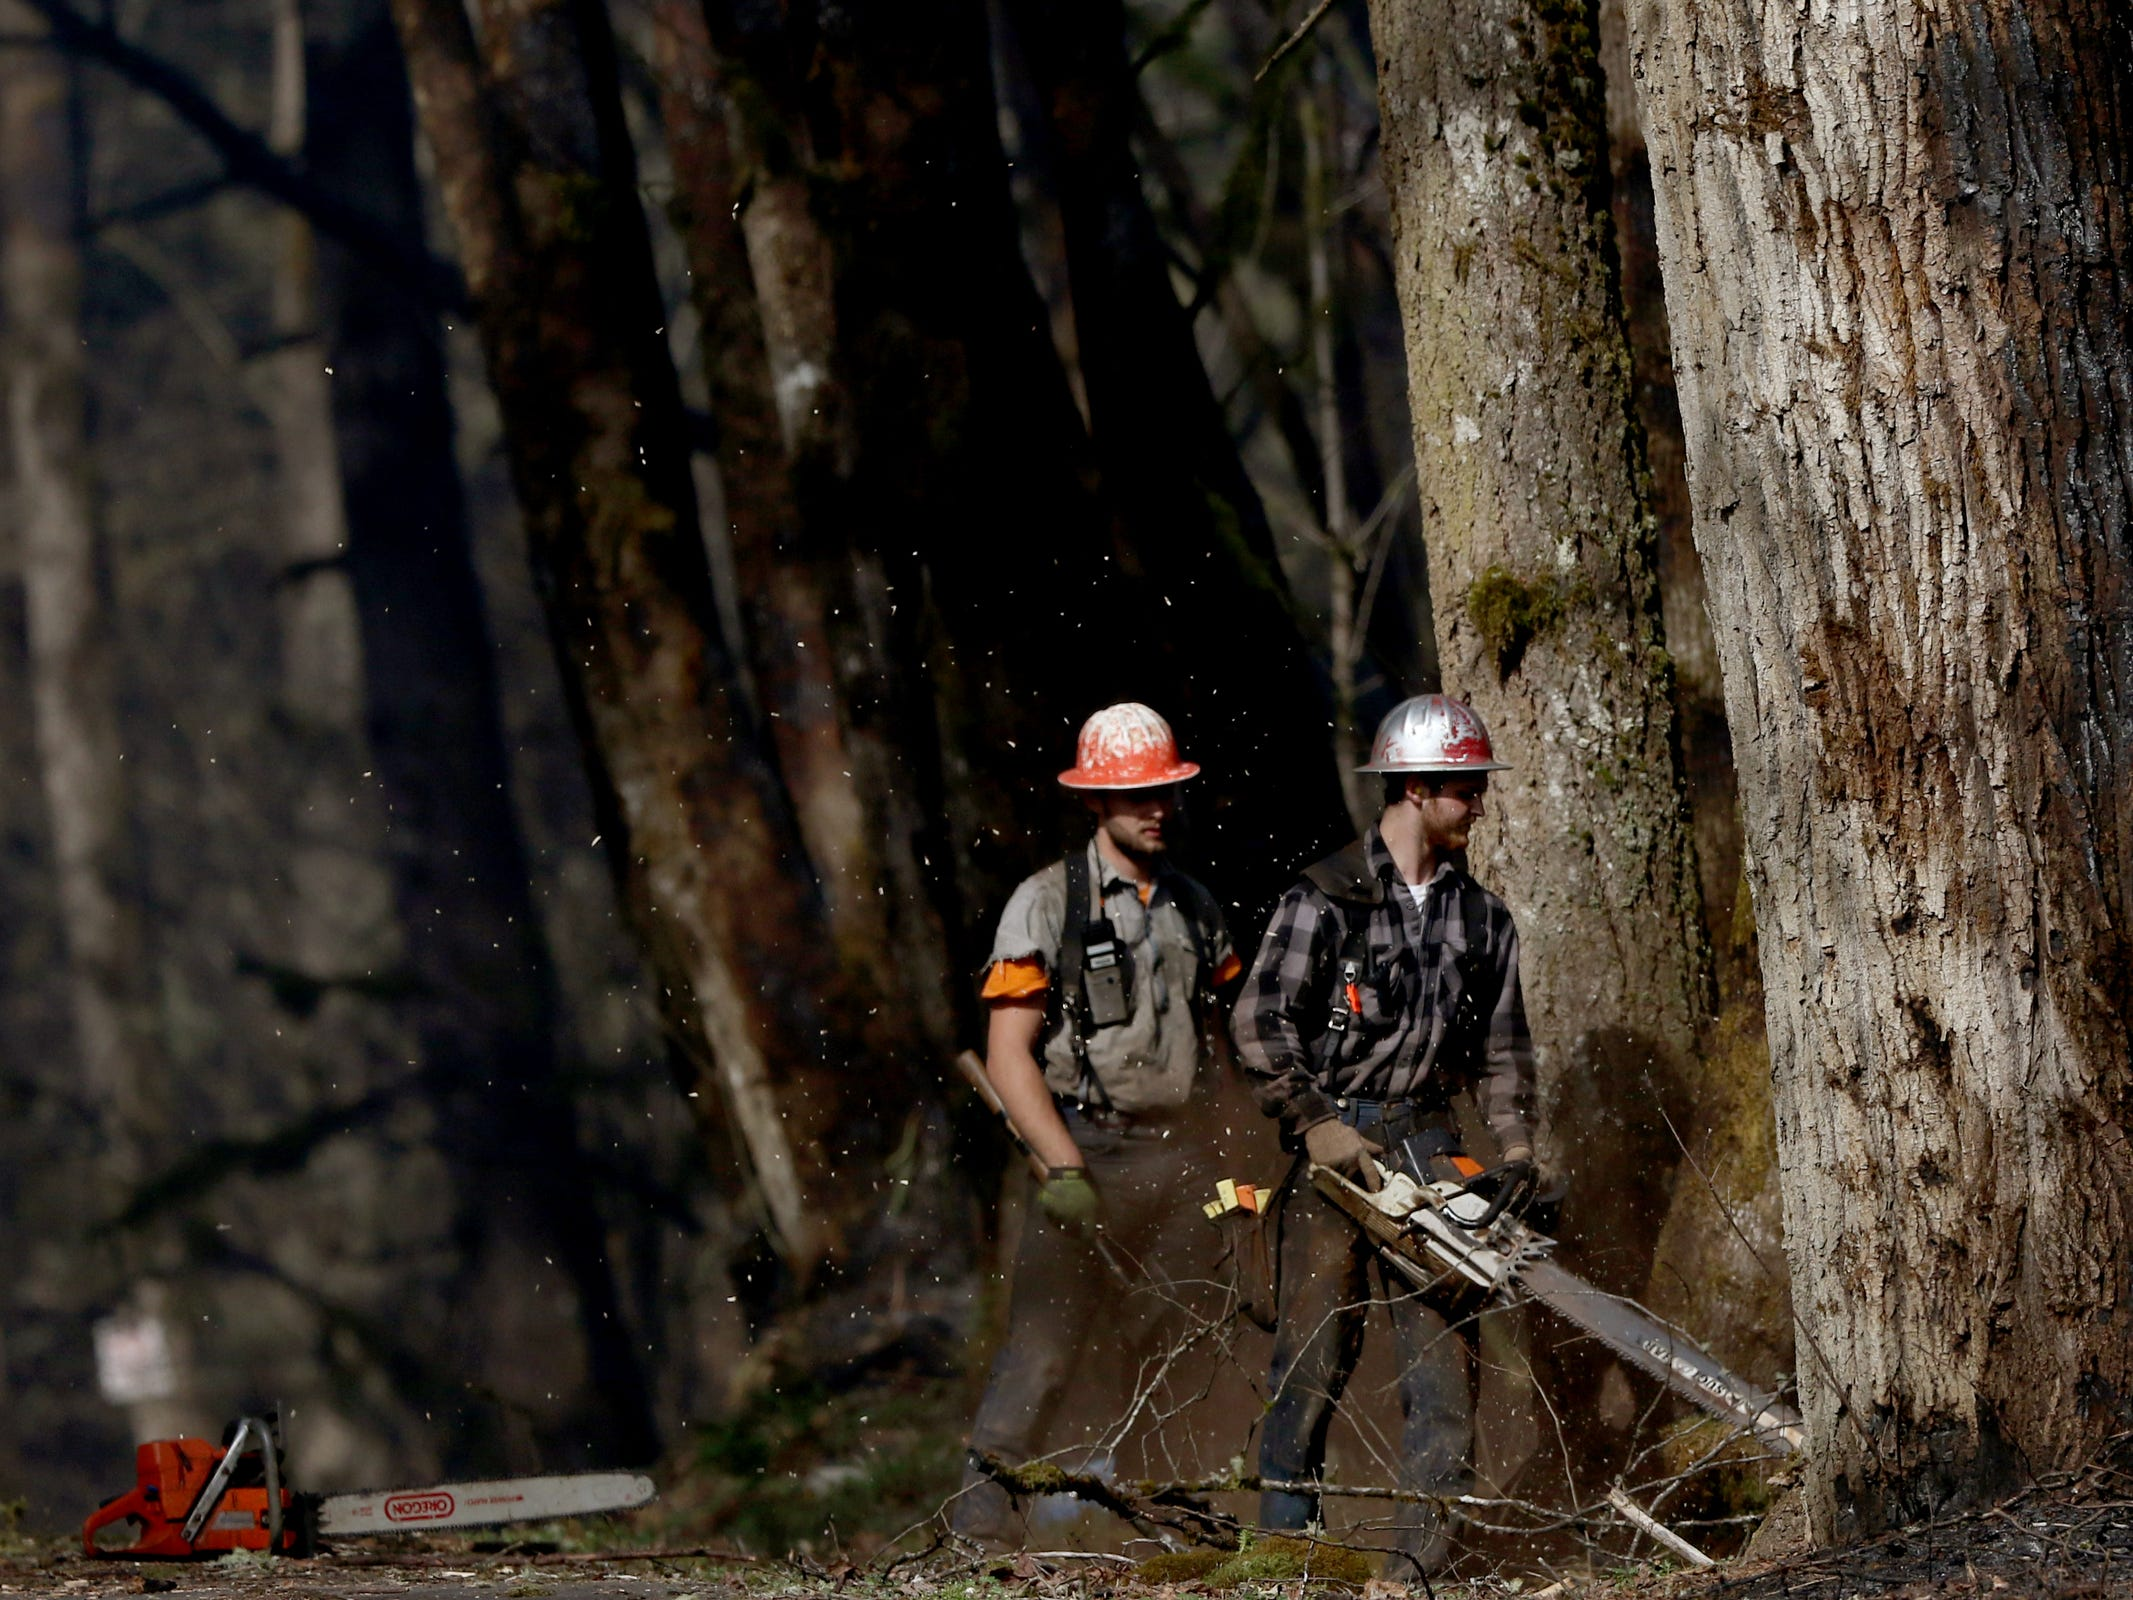 A fire crew patrols the North Santiam State Recreation Area as a wildfire that began Tuesday continues to burn in the North Santiam State Recreation Area in near Lyons on March 20, 2019. The fire has forced evacuations in Marion and Linn counties.